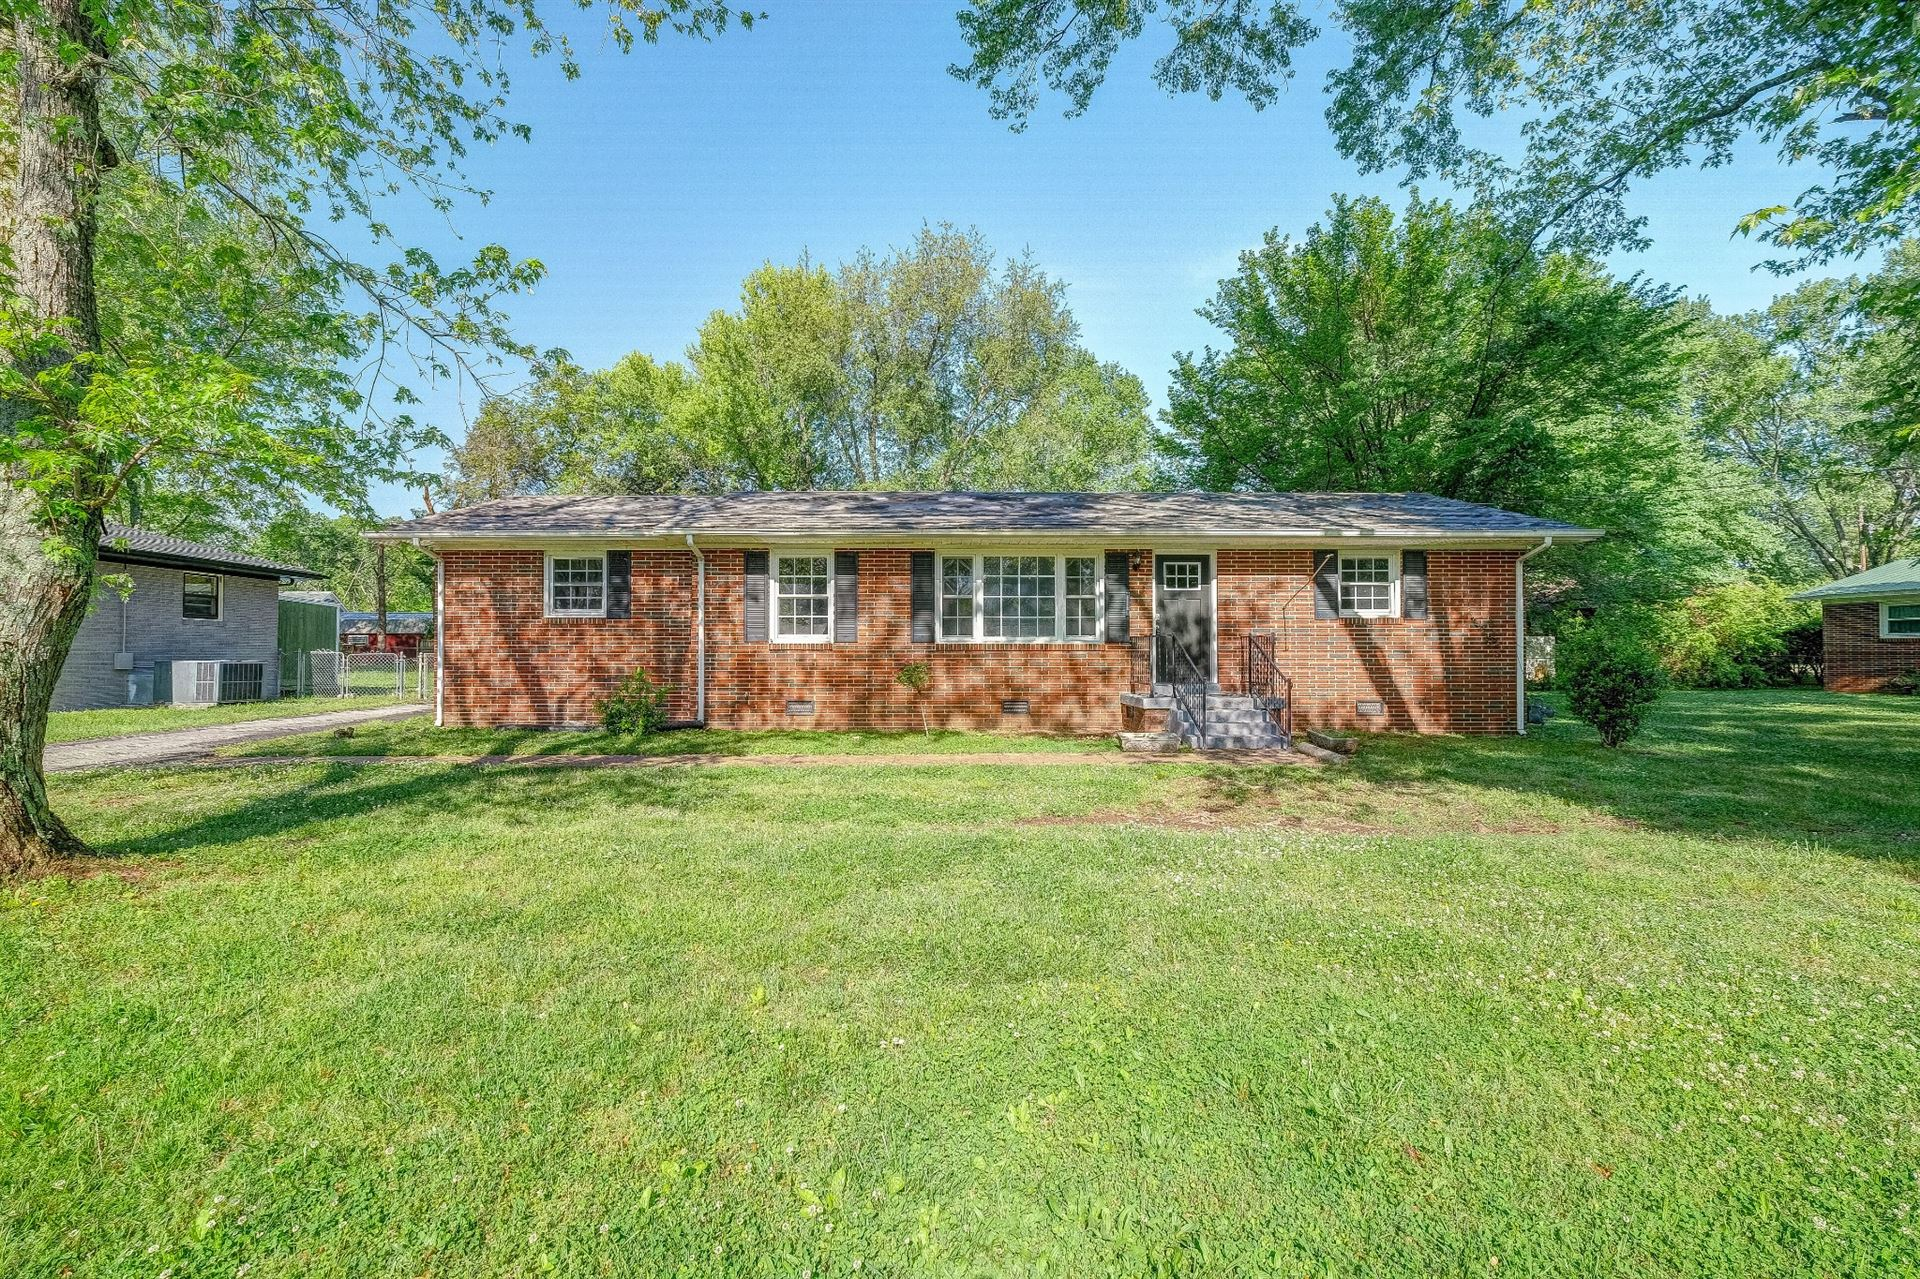 Photo of 2006 Foxdale Dr, Murfreesboro, TN 37130 (MLS # 2248342)